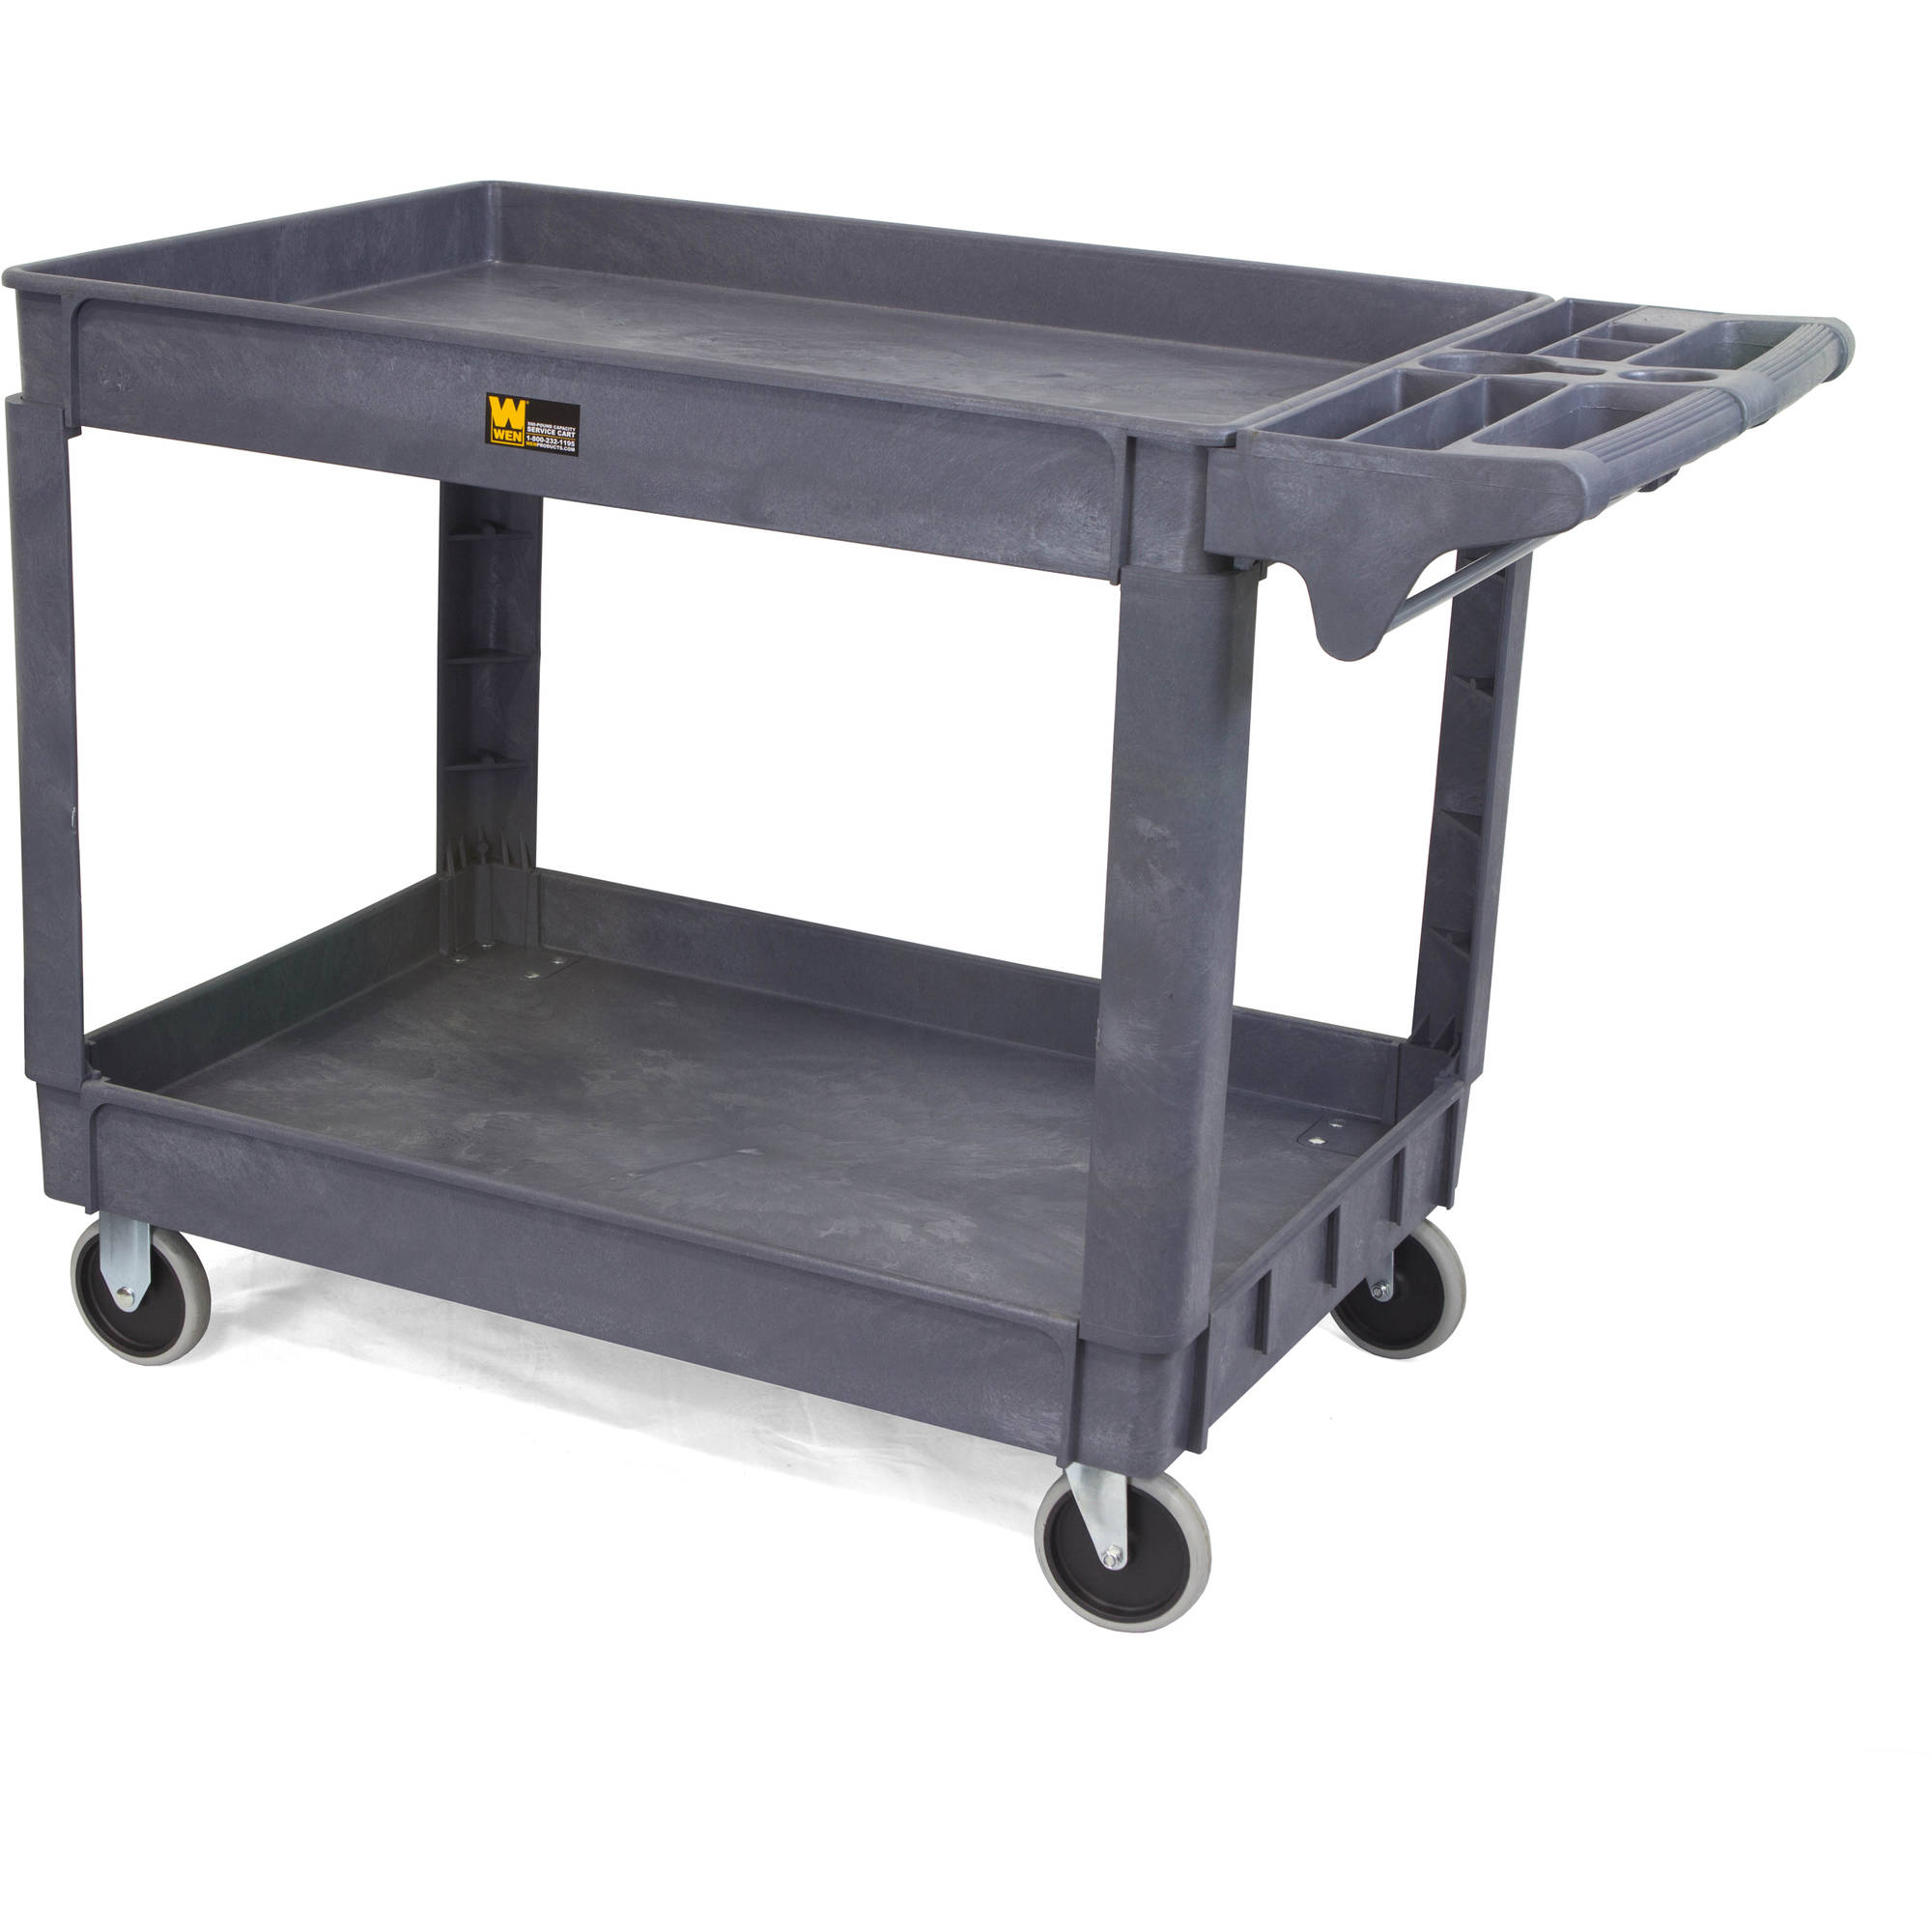 500-Pound Capacity 36-by-24-Inch Service Cart, Extra Large